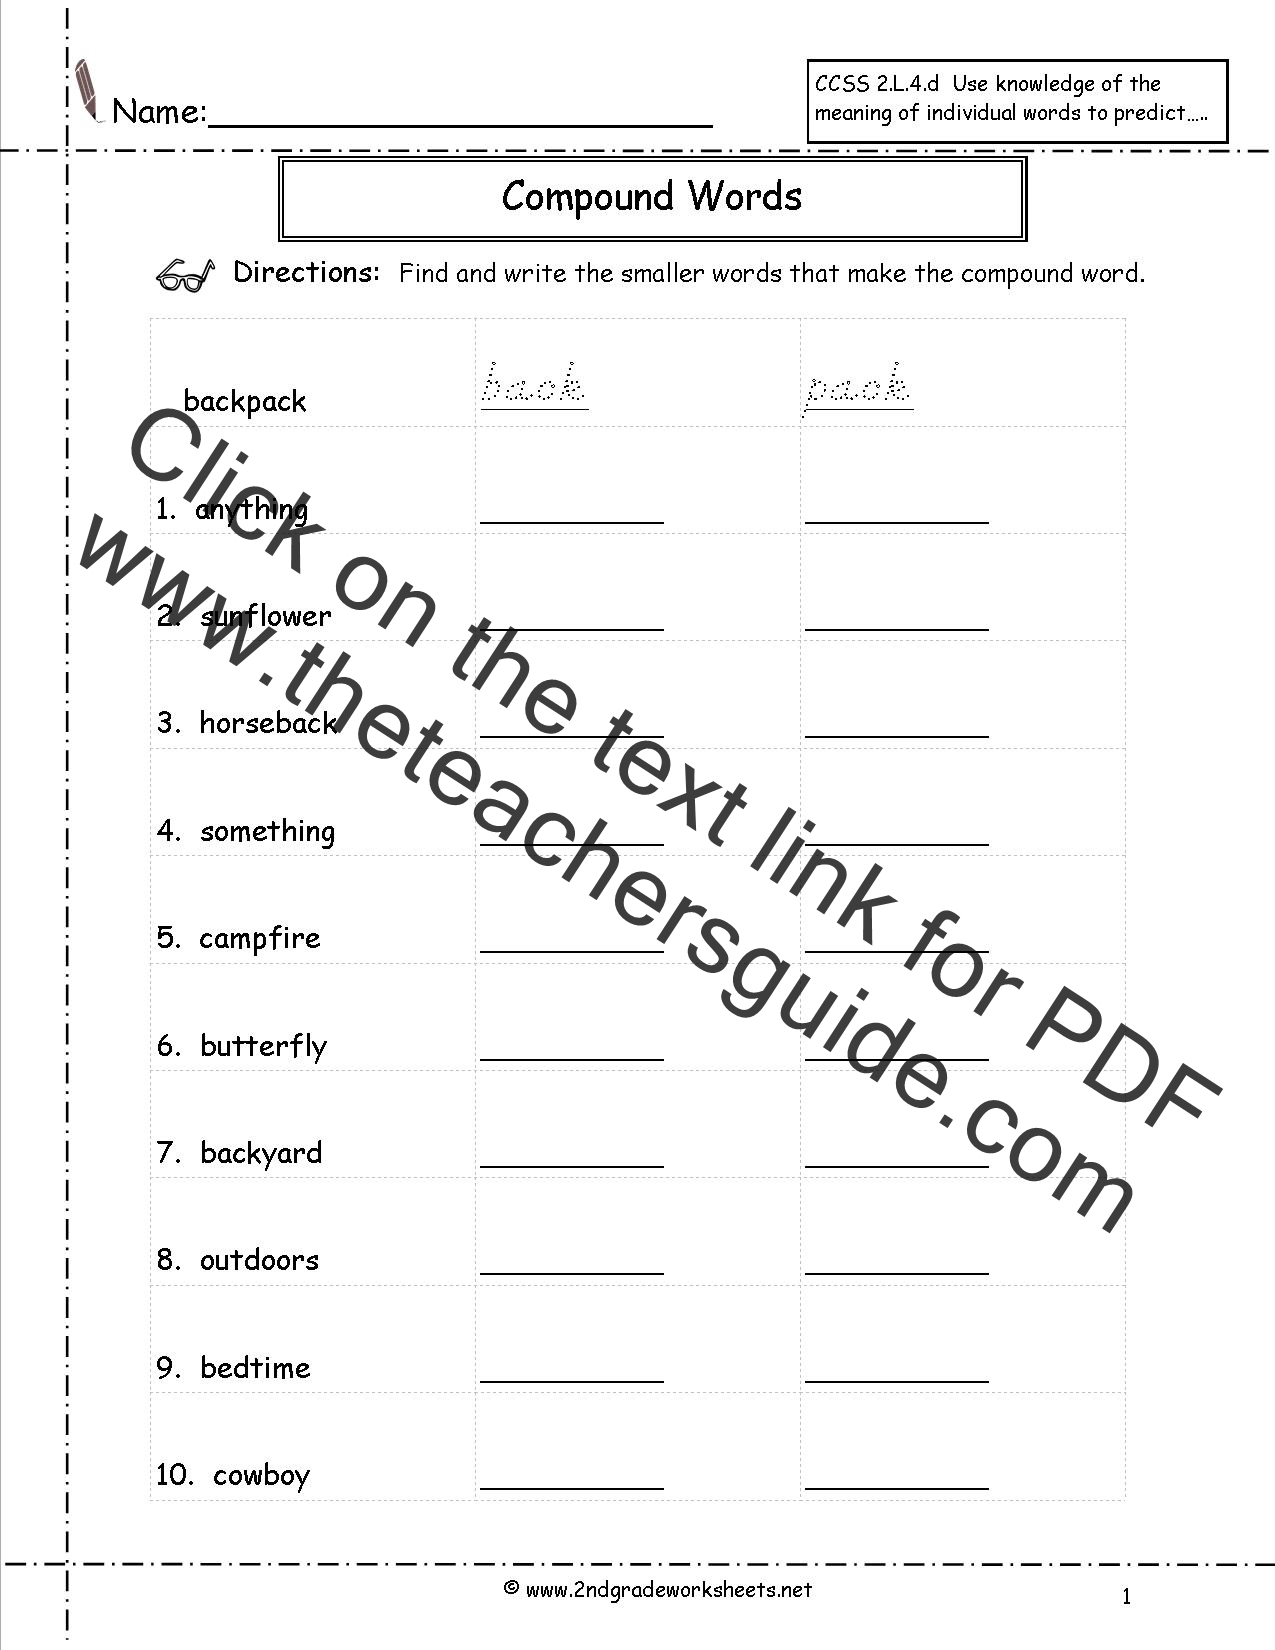 Printables Grammar Worksheets Second Grade free languagegrammar worksheets and printouts compound words worksheets